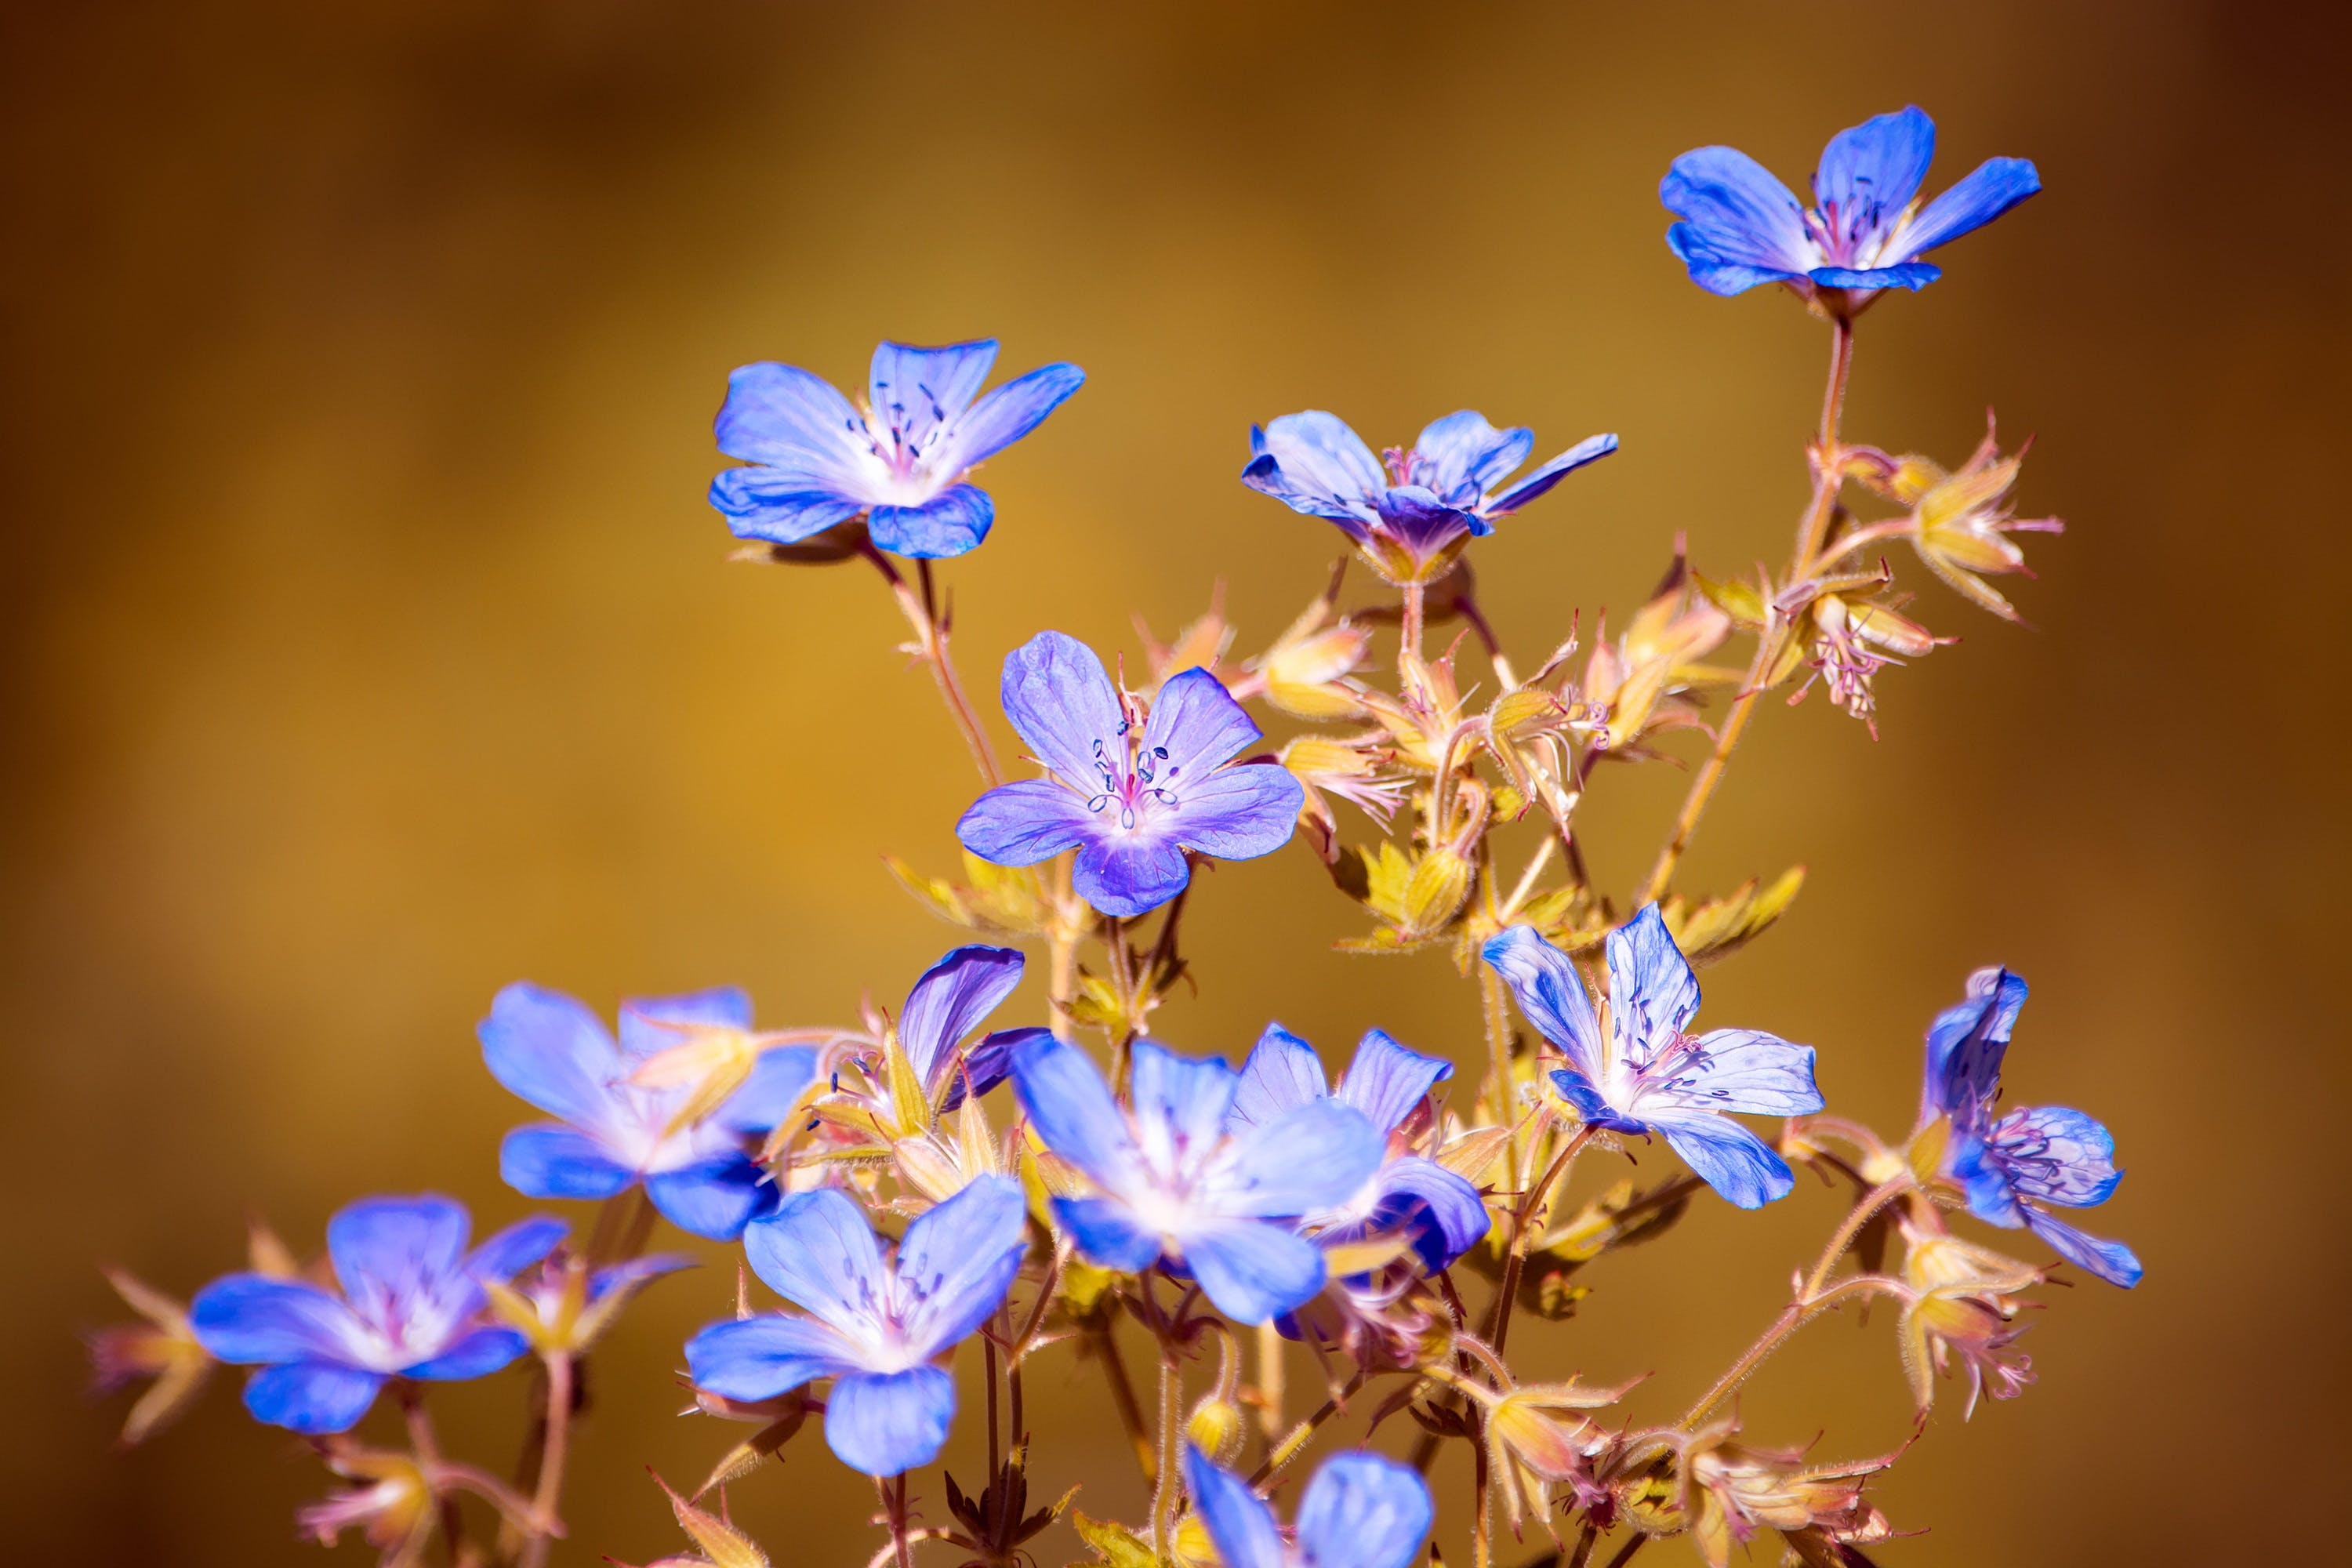 Macro Photography of Blue Petaled Flowers